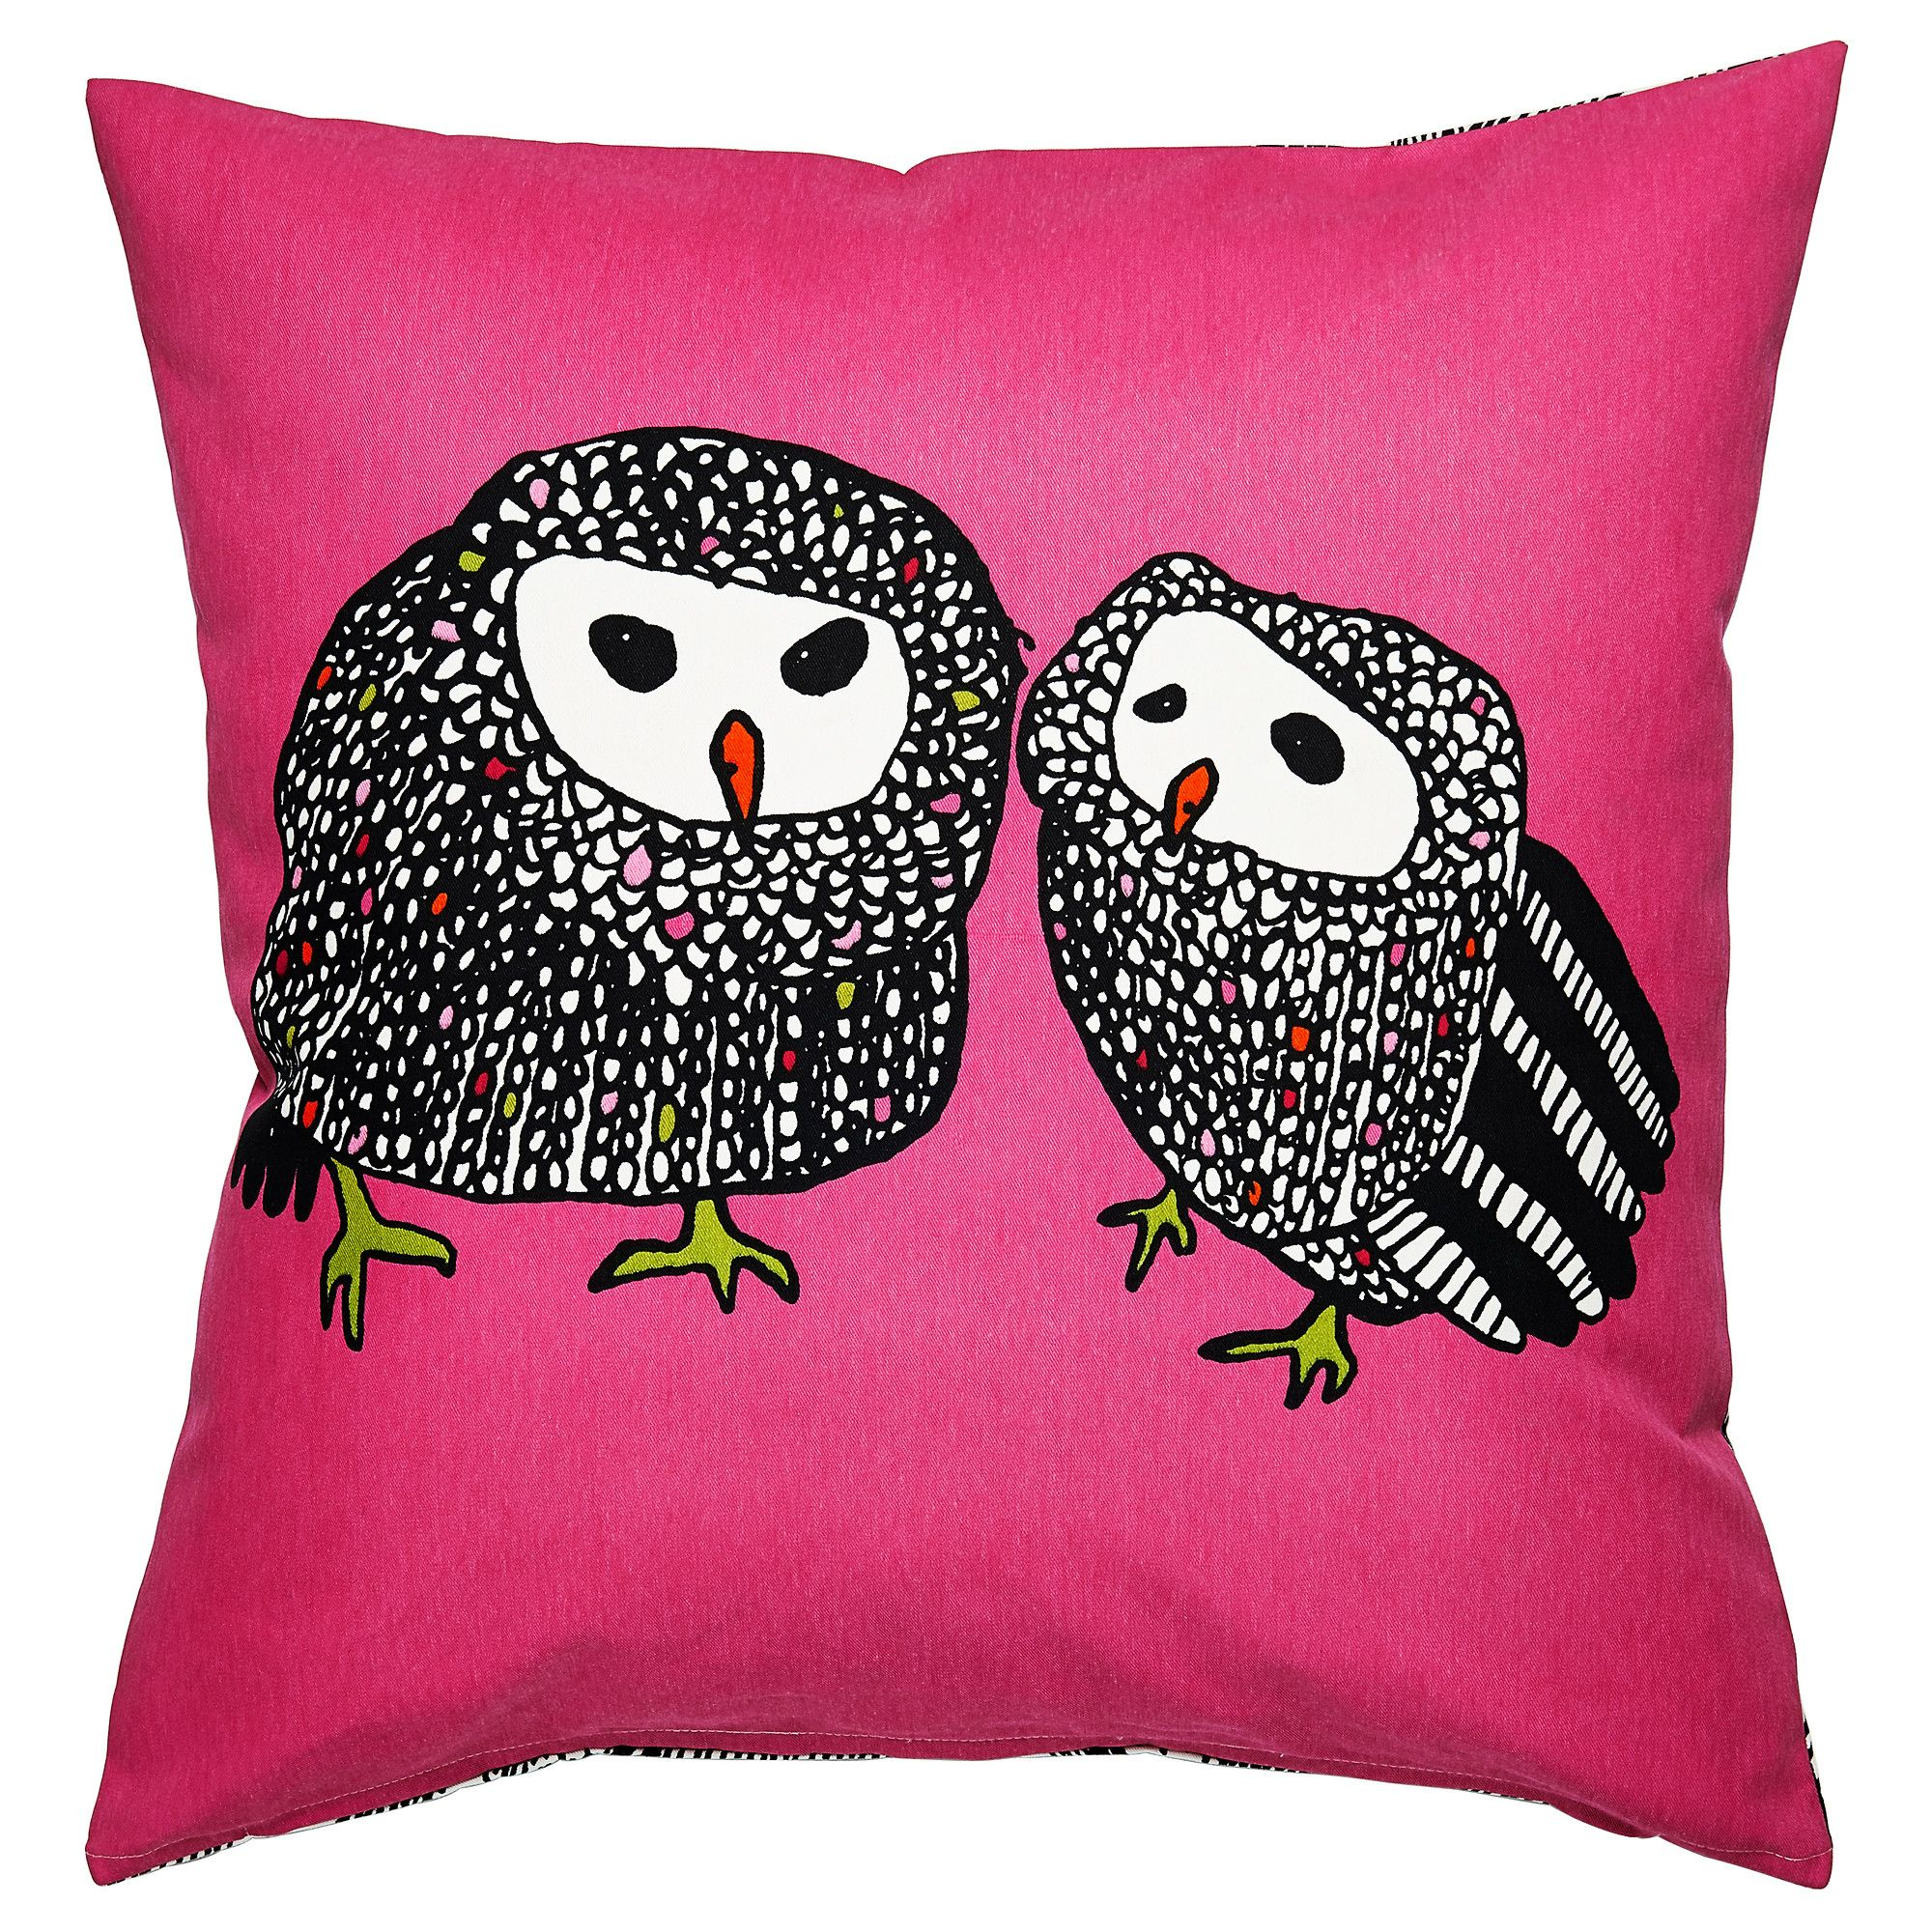 US Furniture and Home Furnishings Ikea, Owl cushion